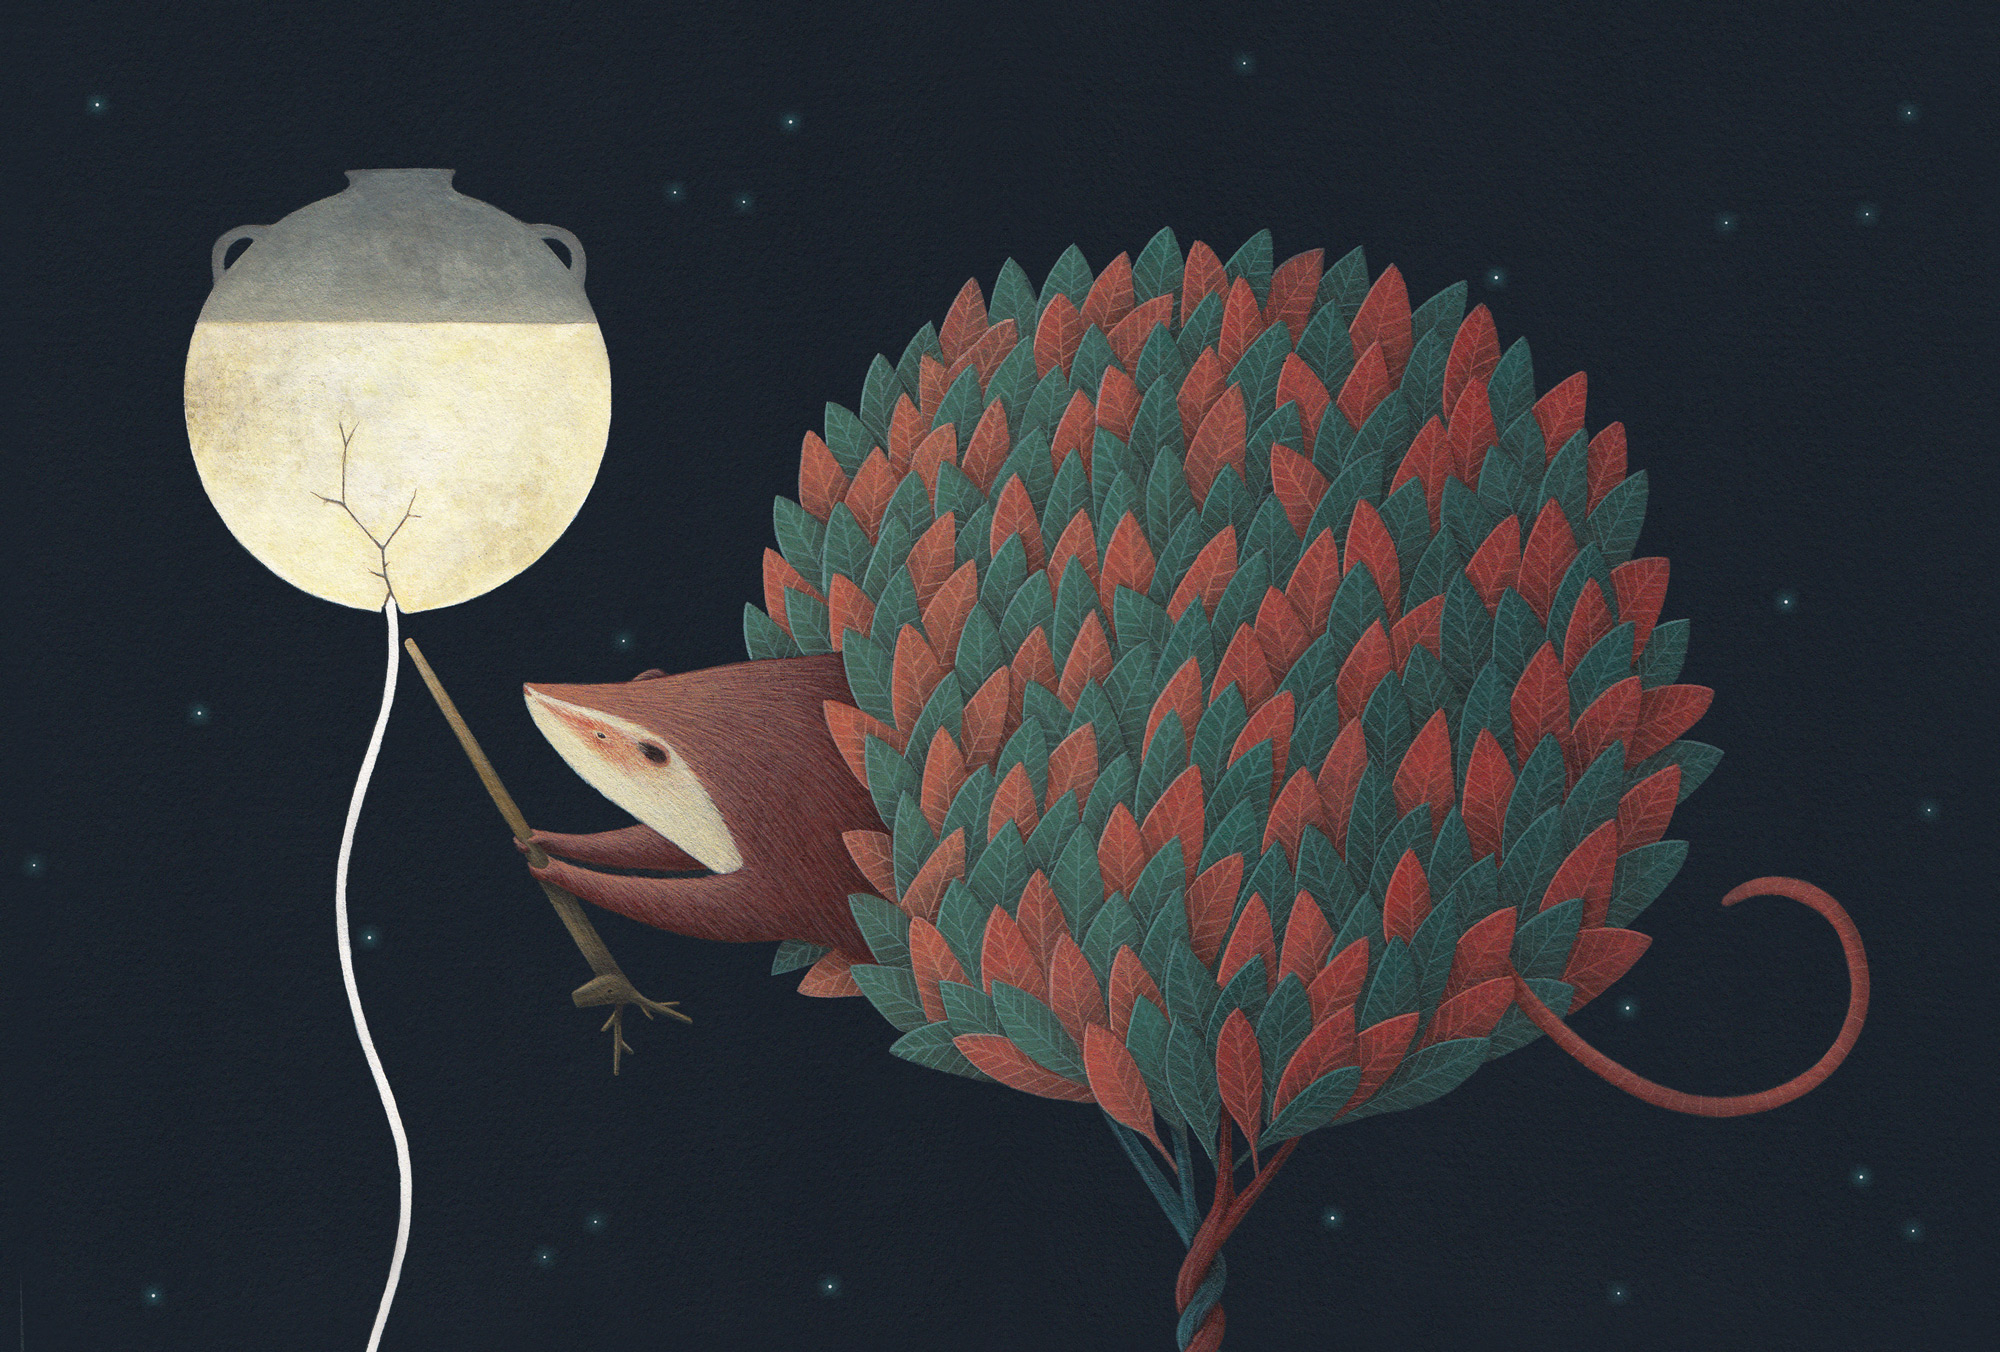 The Moon's Magical Mythology Captured in an Illustrated Book by David Álvarez